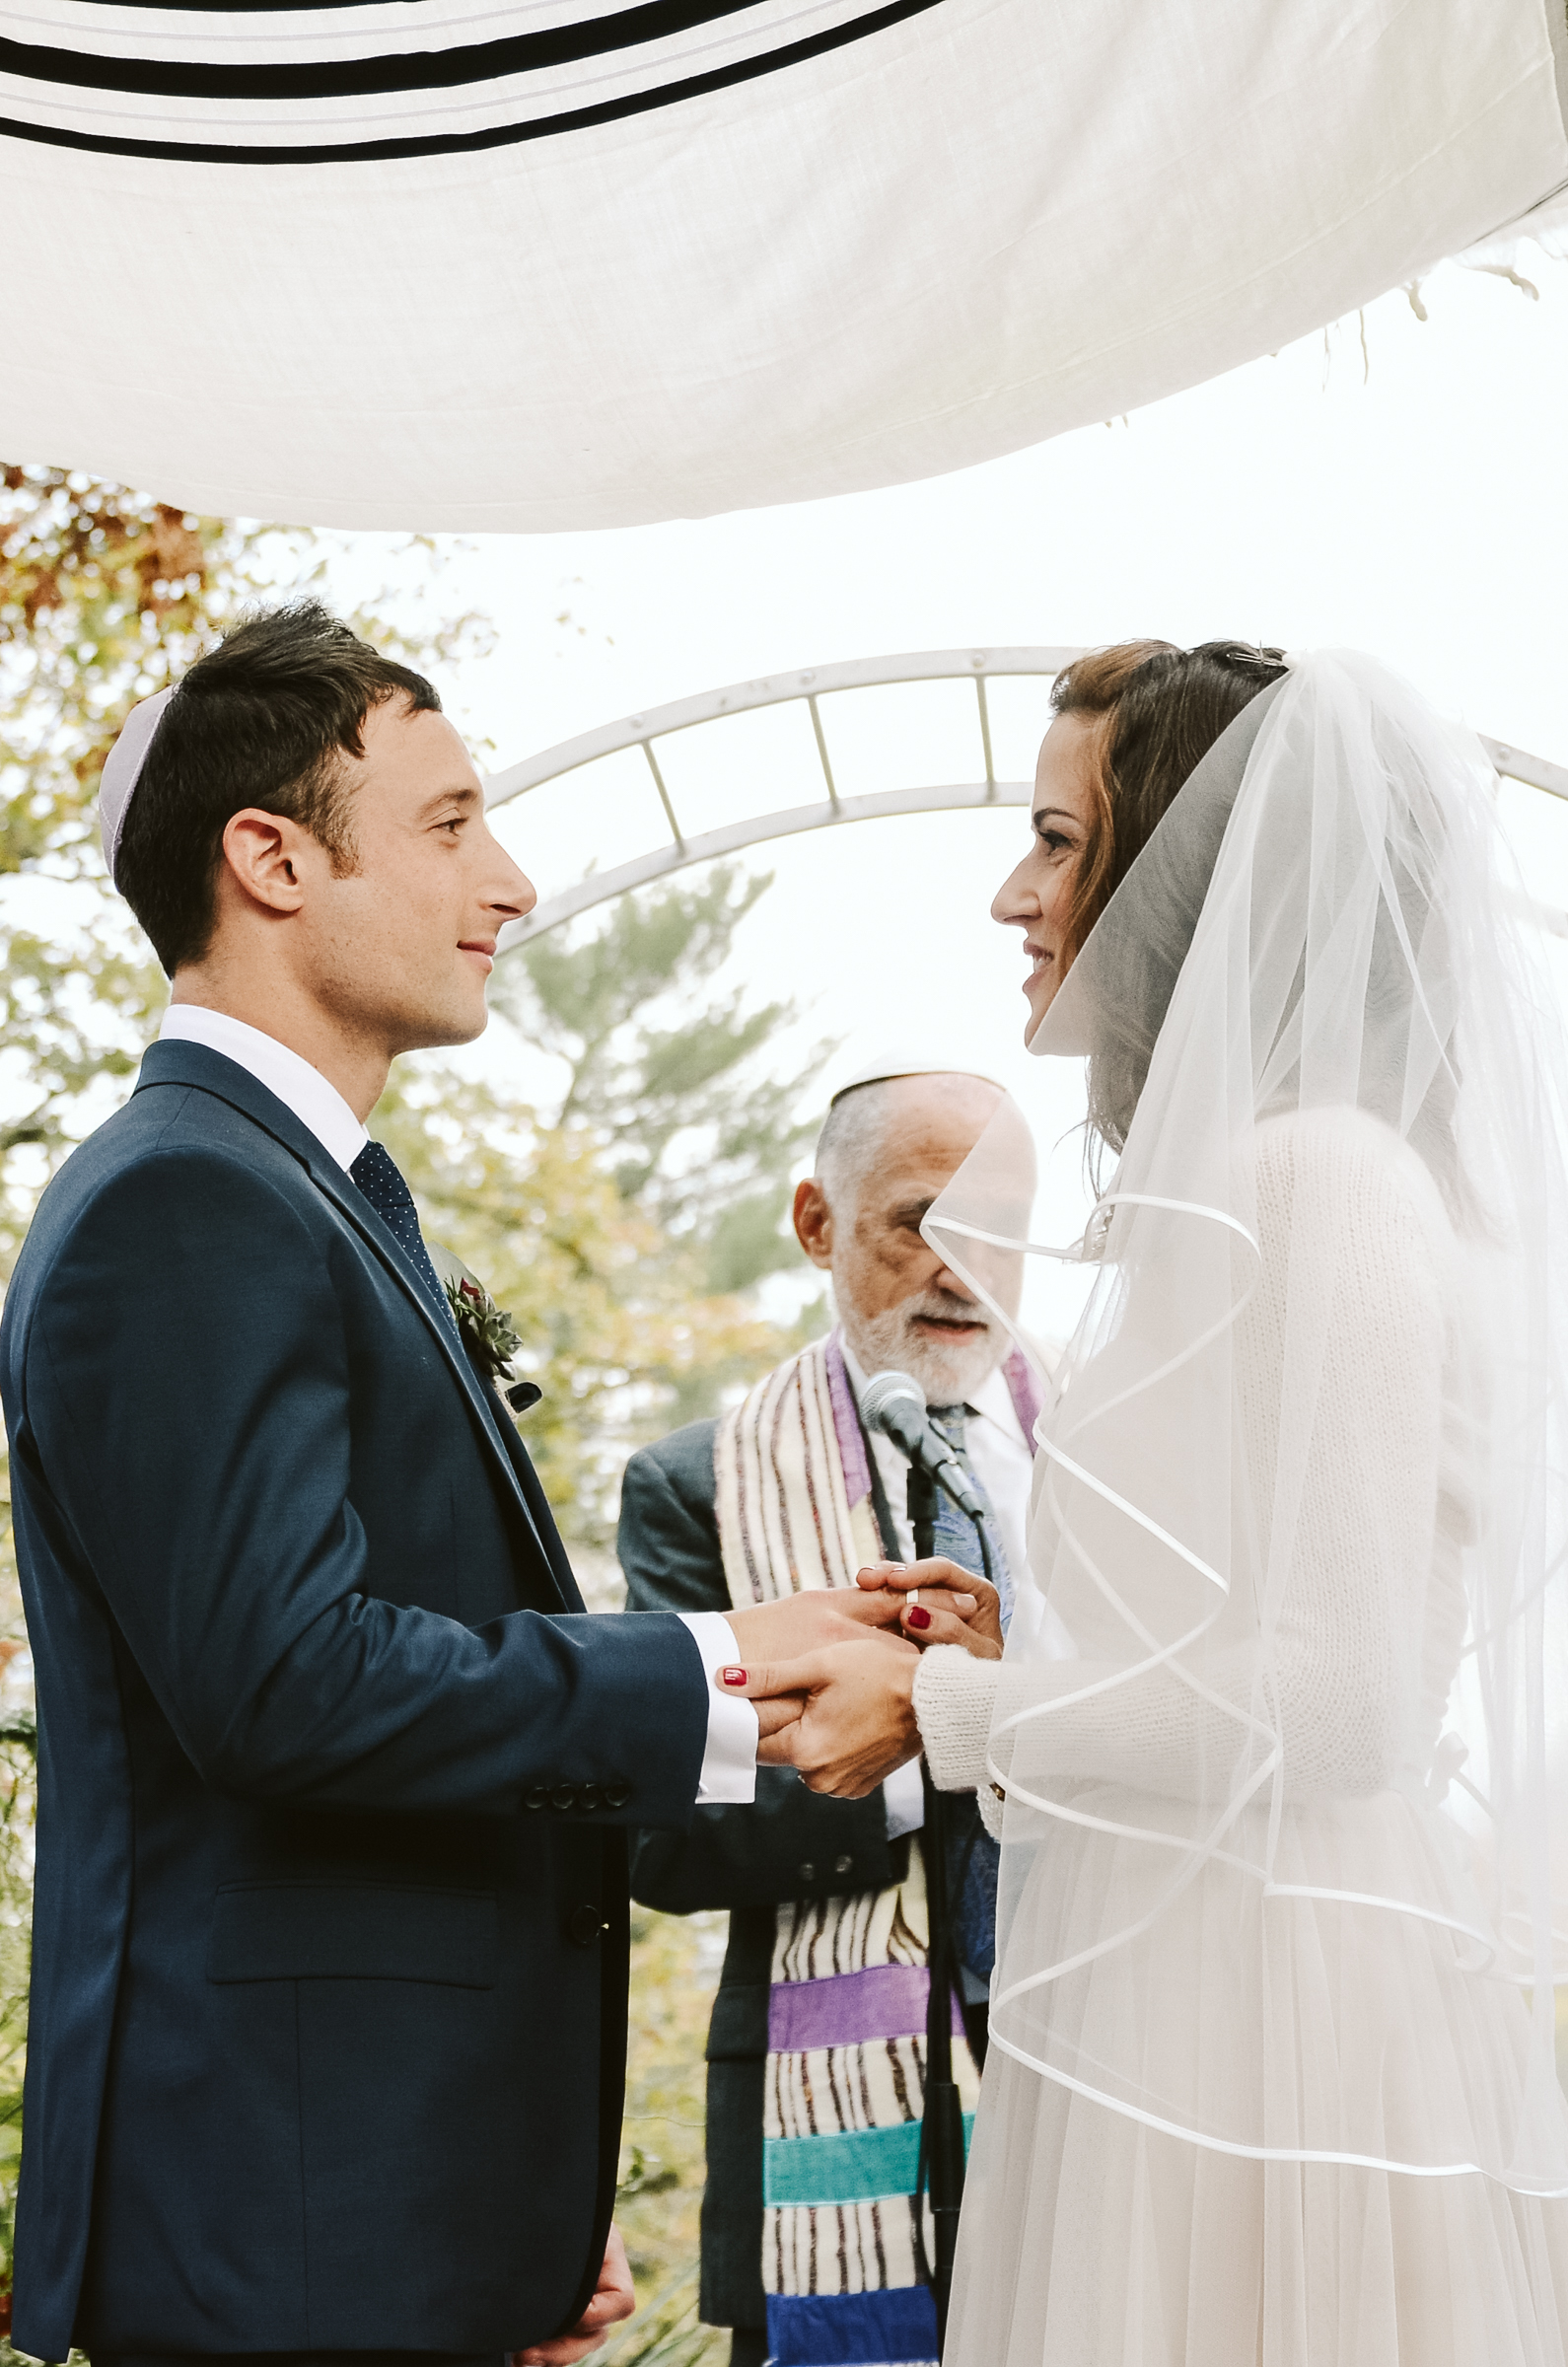 Jen and Drew's Wedding Edited 2019 web-59.jpg